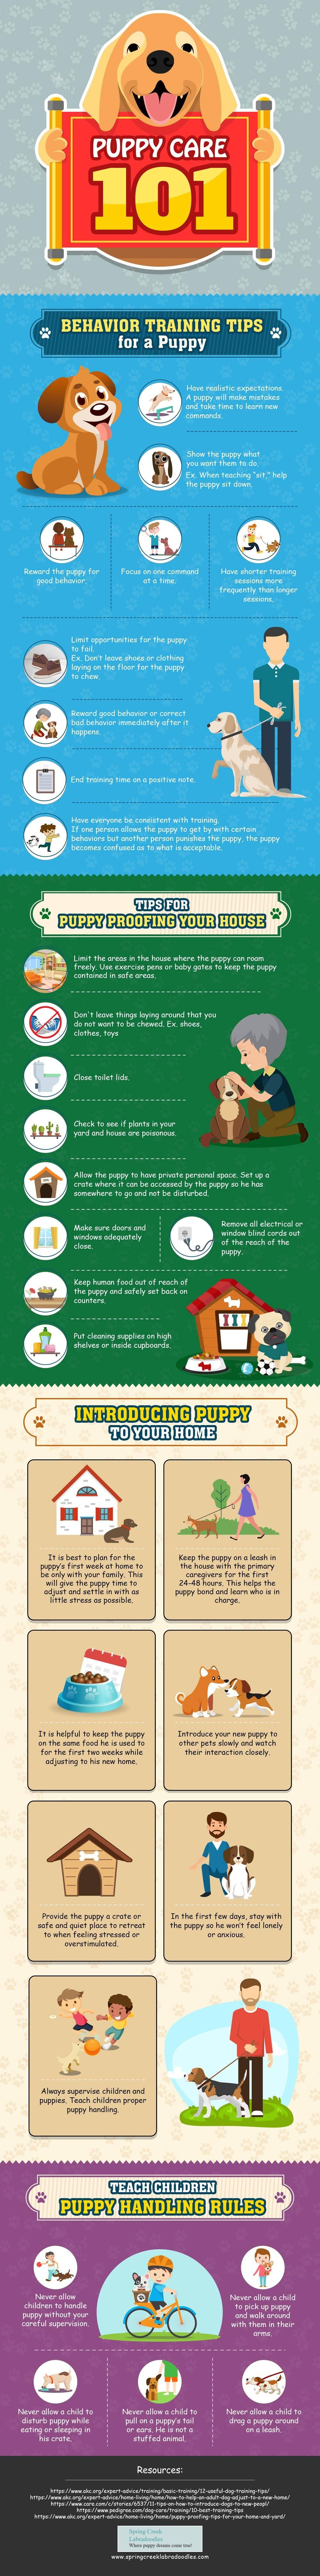 Puppy Care 101 #Infographic